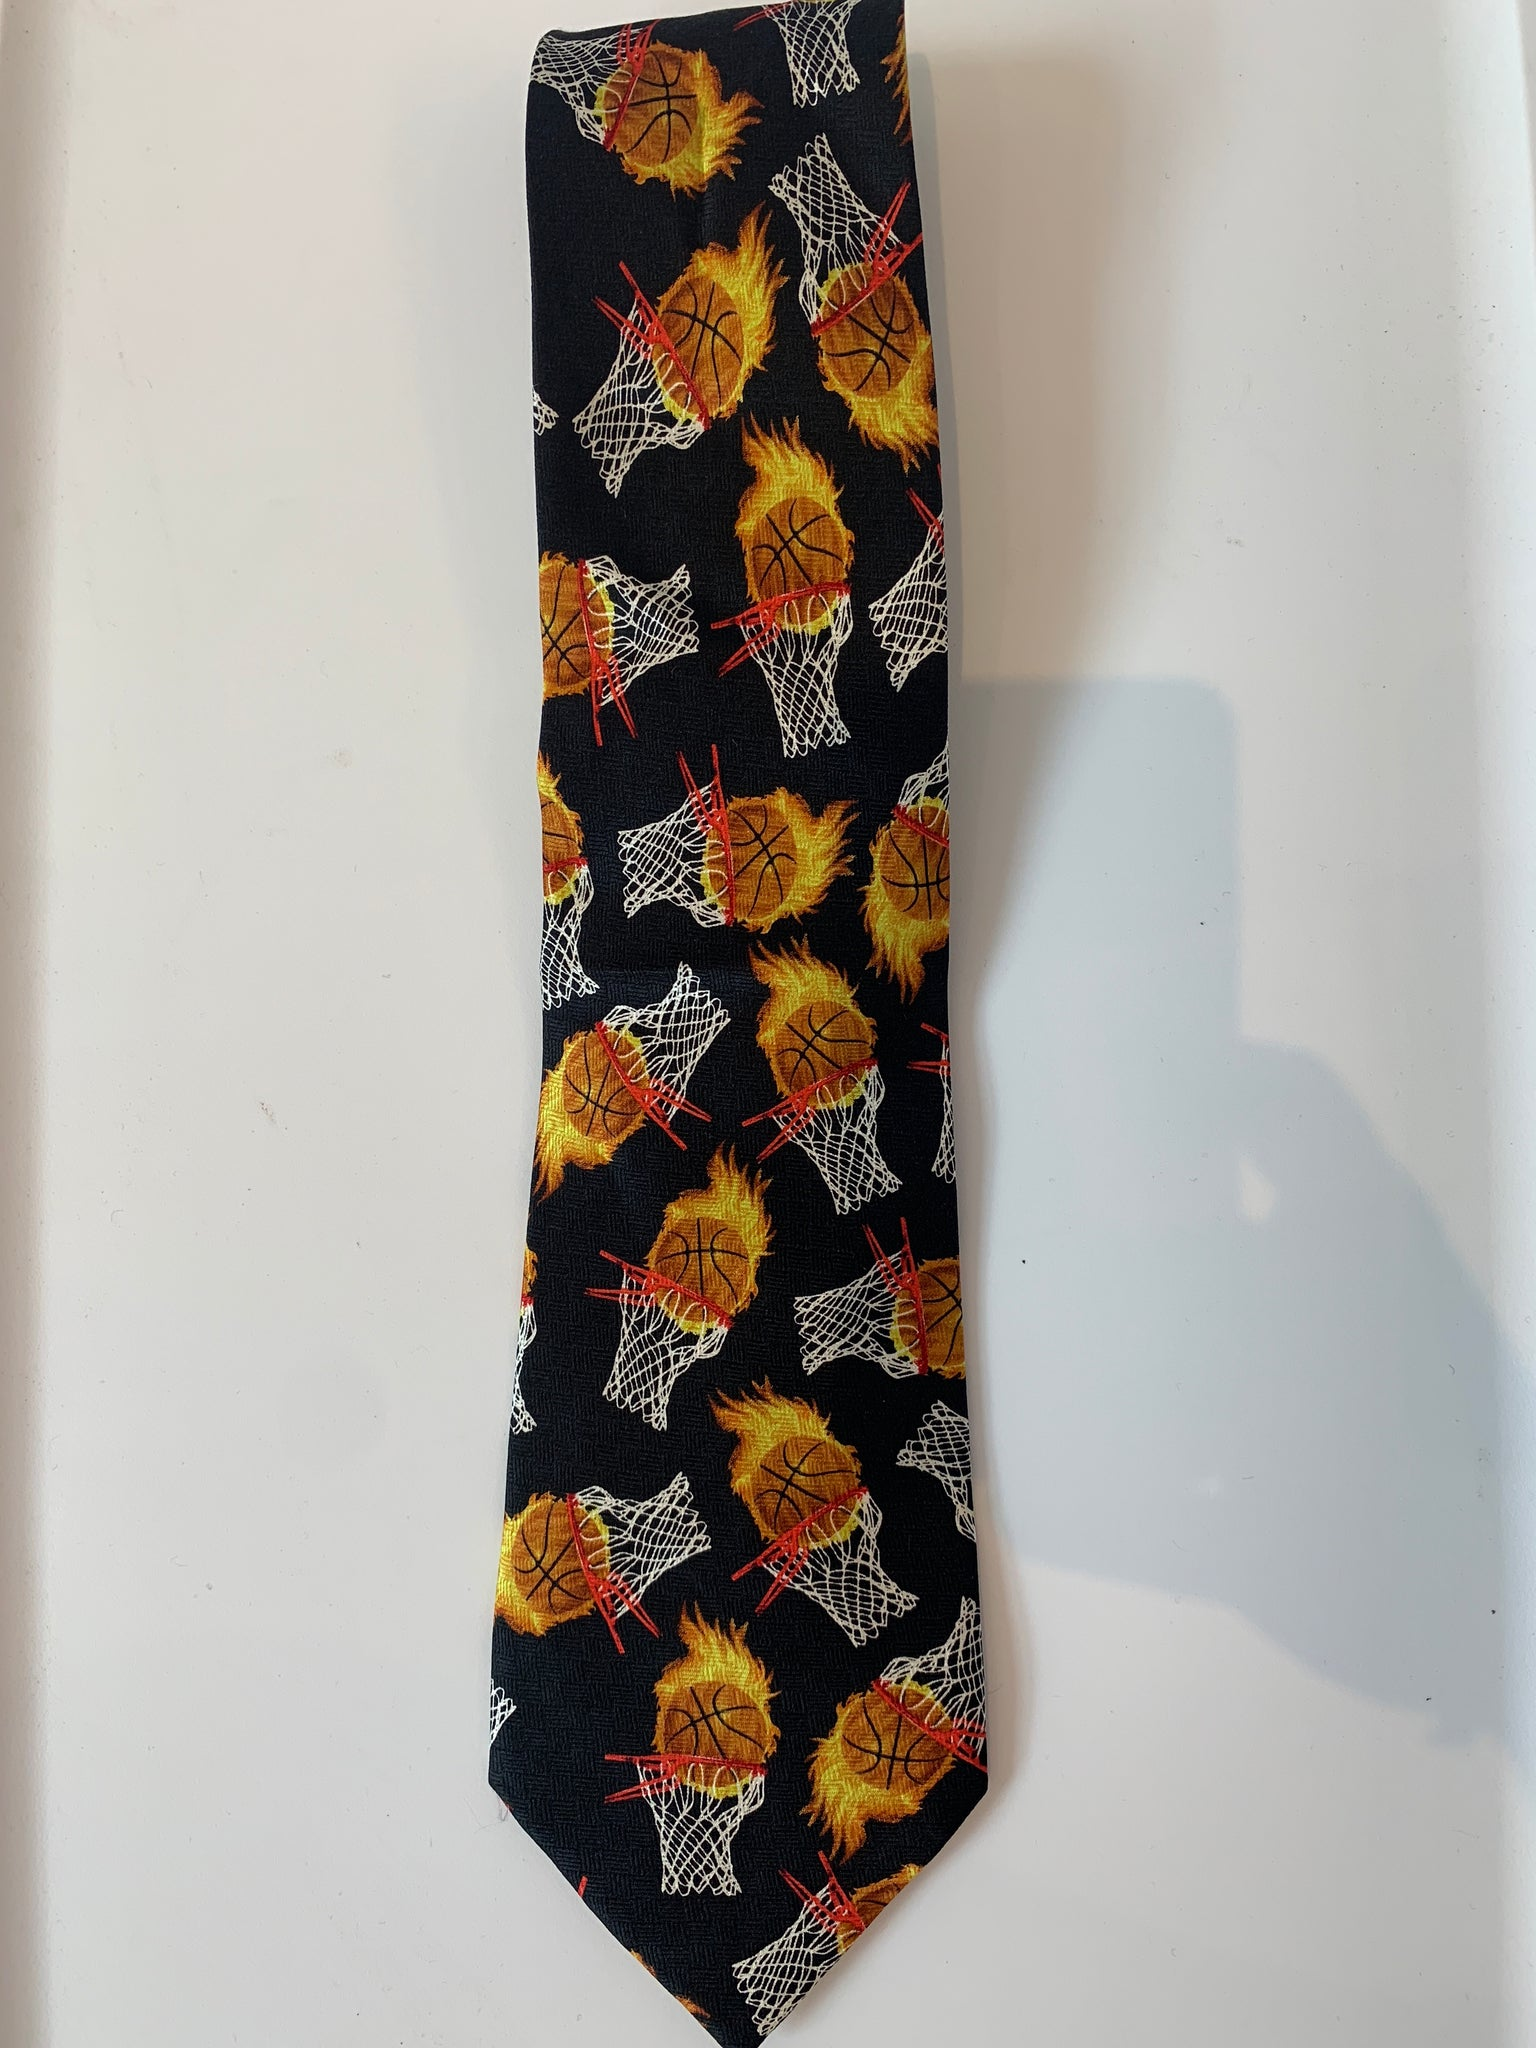 Basketball Tie